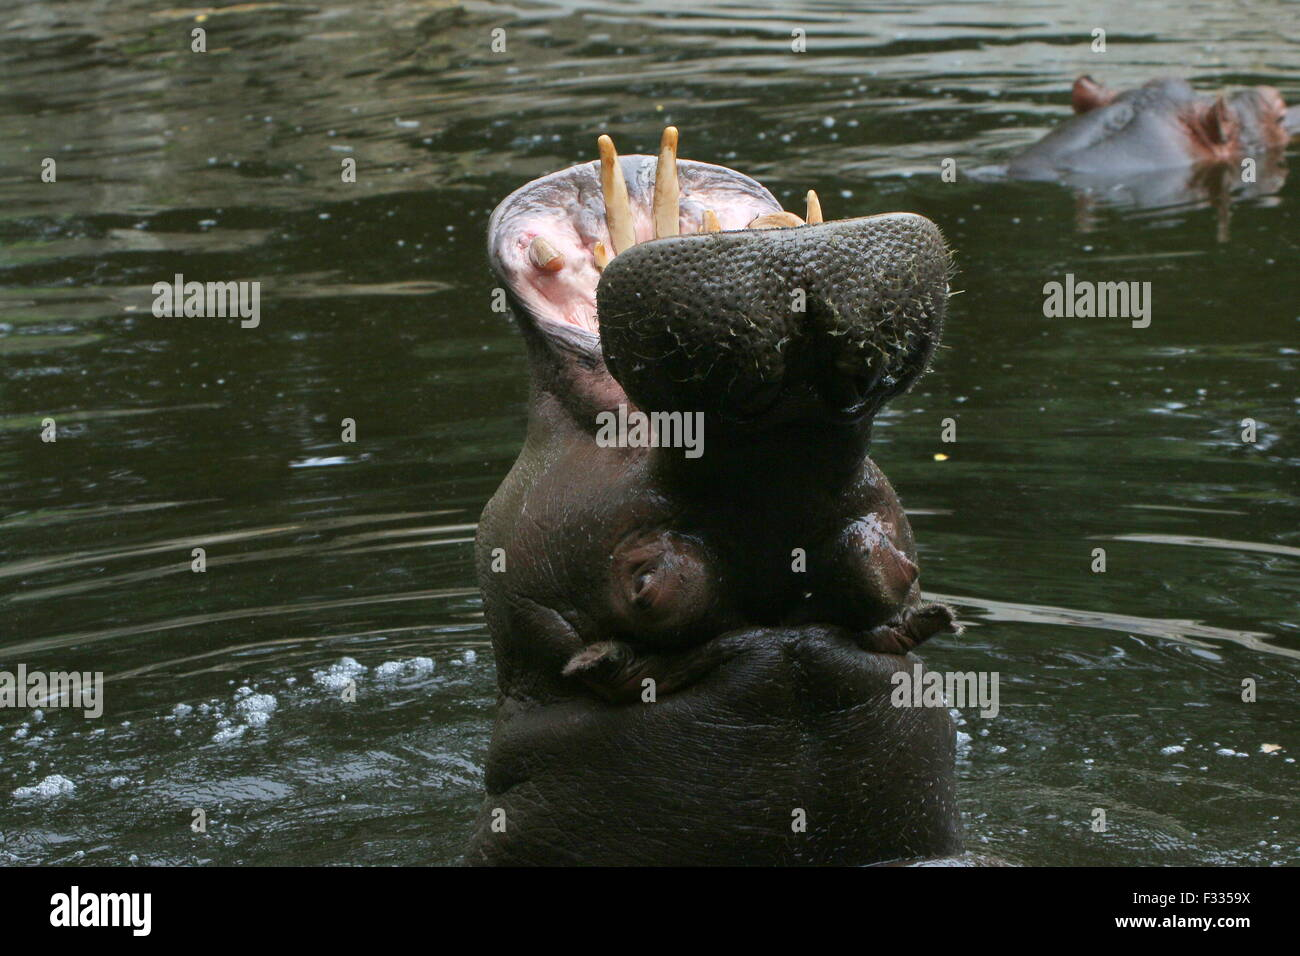 African Hippo (Hippopotamus amphibius) in close-up, rearing head up high out of the water - Stock Image